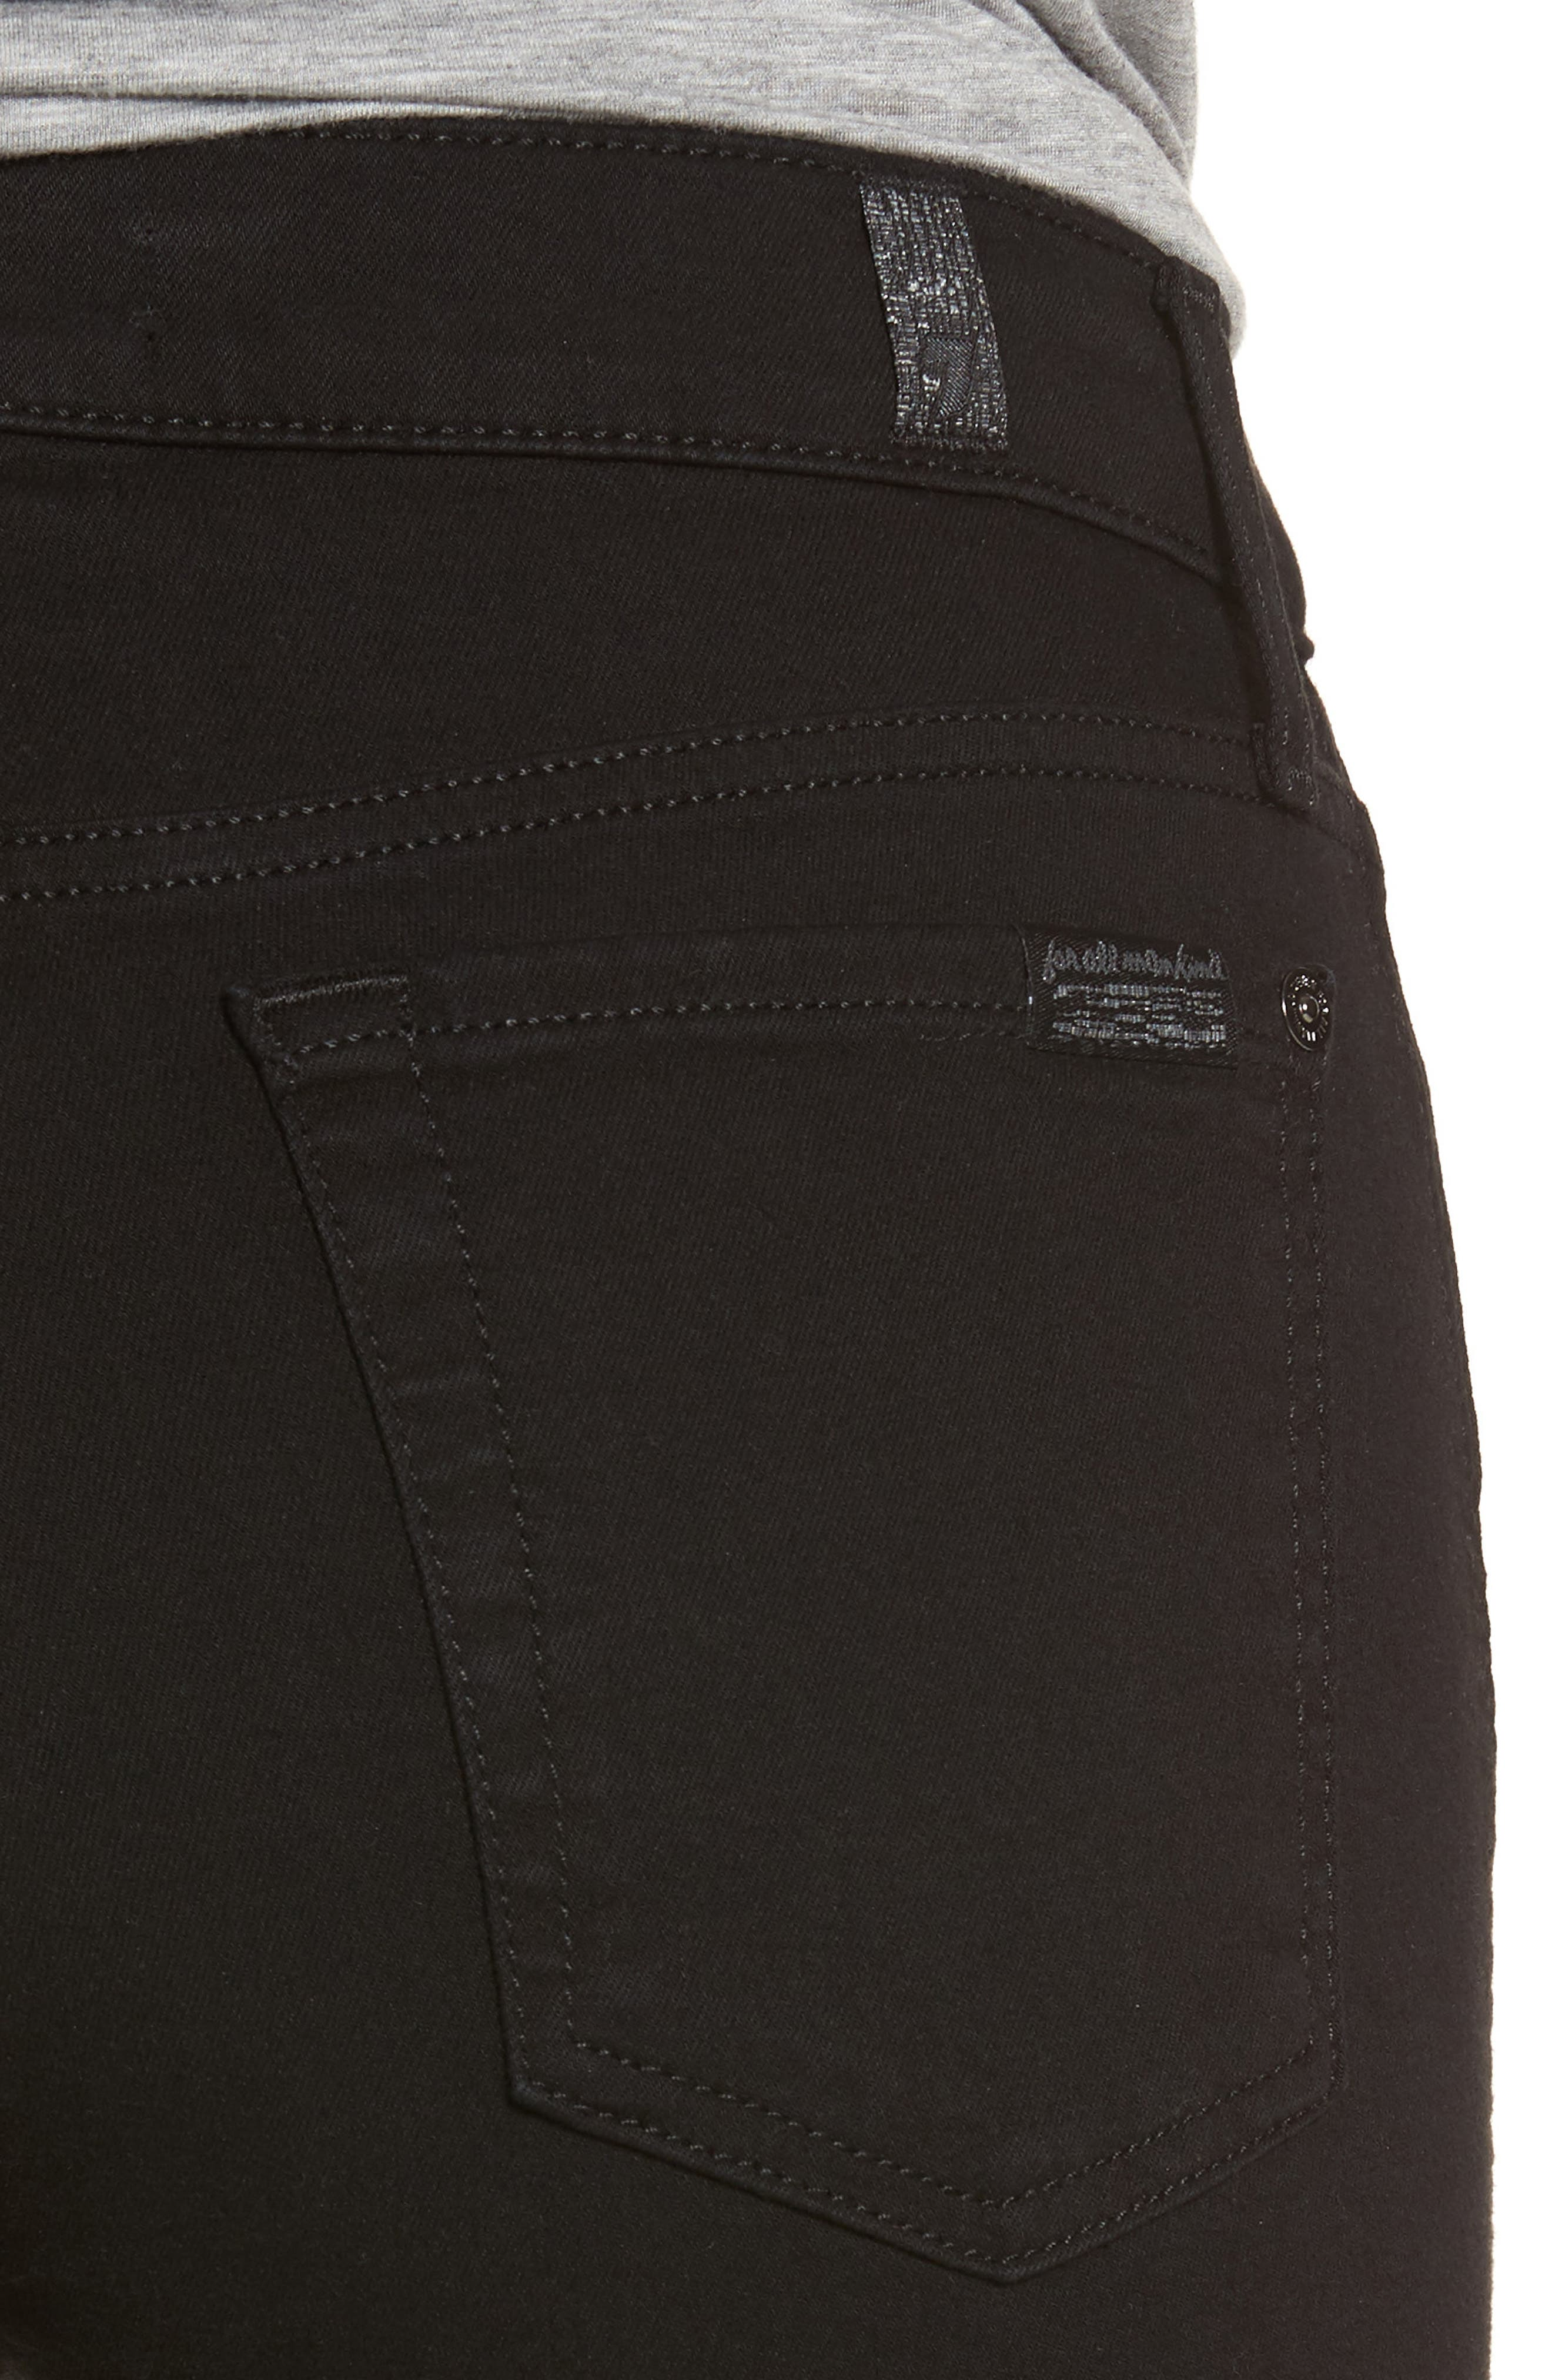 7 FOR ALL MANKIND<SUP>®</SUP>, b(air) Crop Bootcut Jeans, Alternate thumbnail 4, color, 004